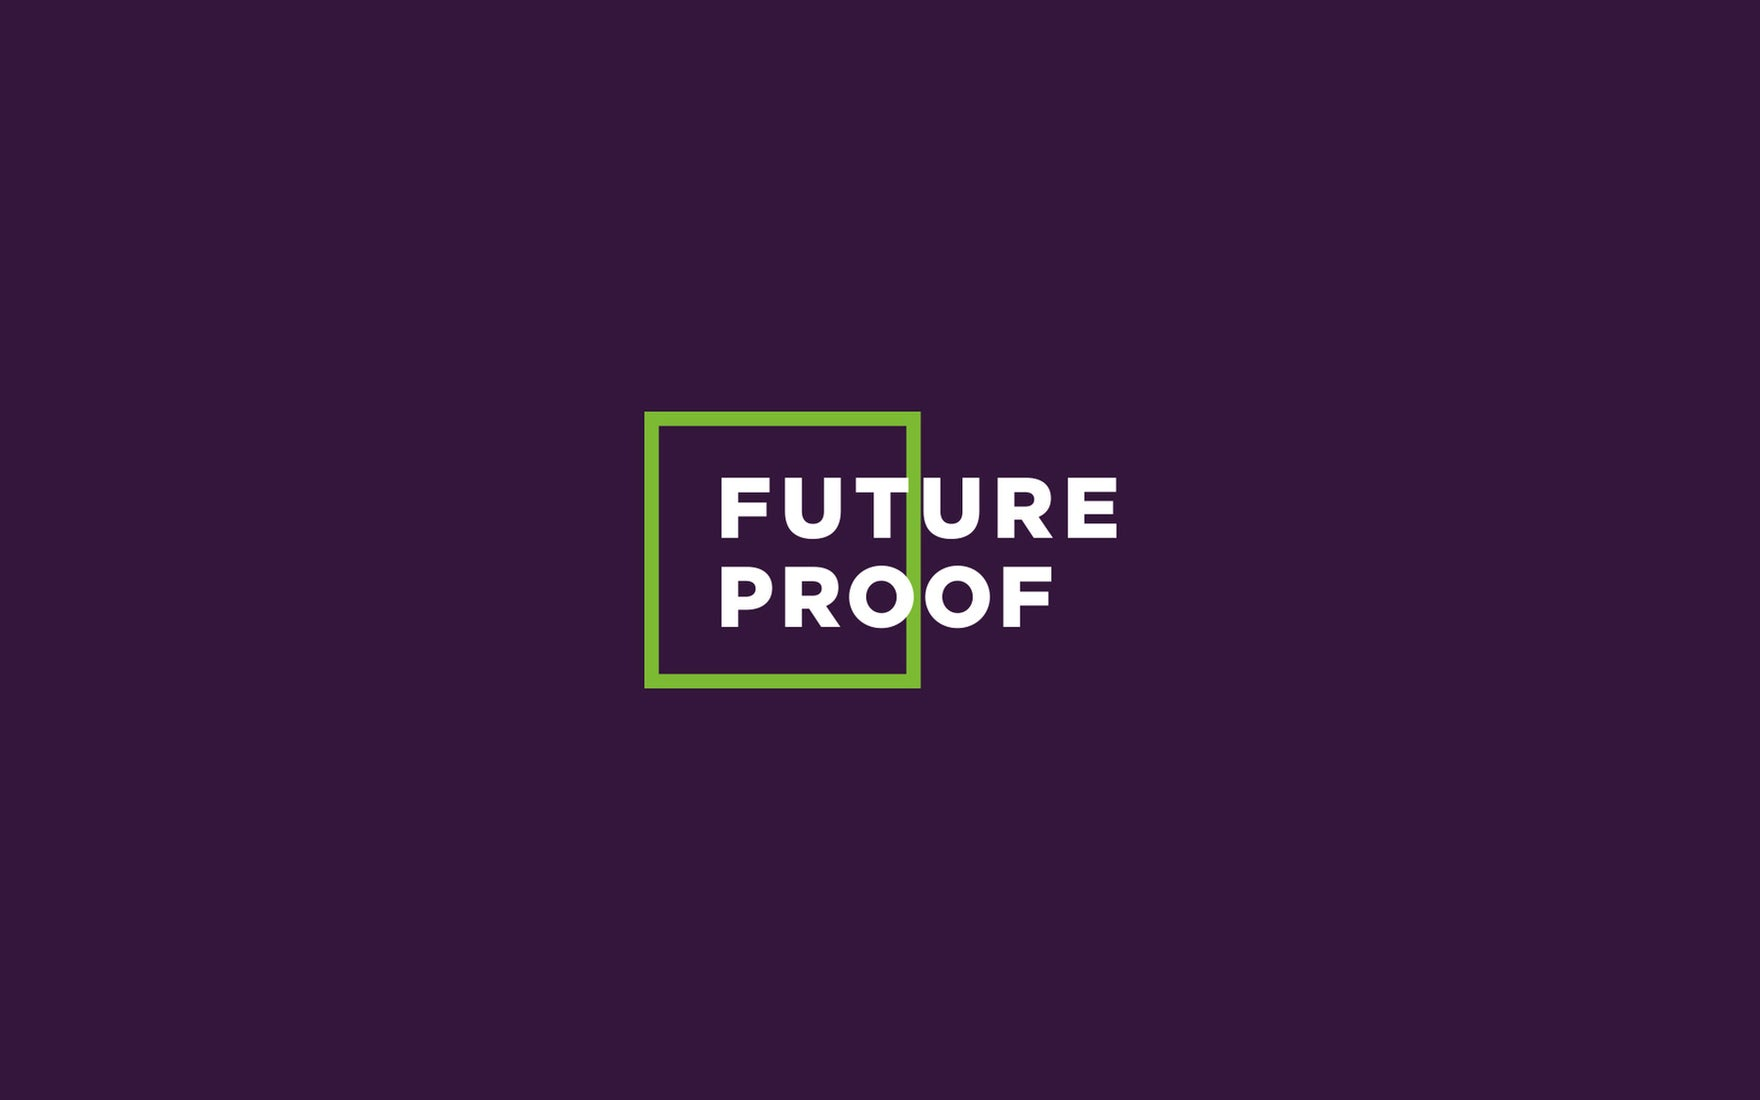 Futureproof logo.jpg